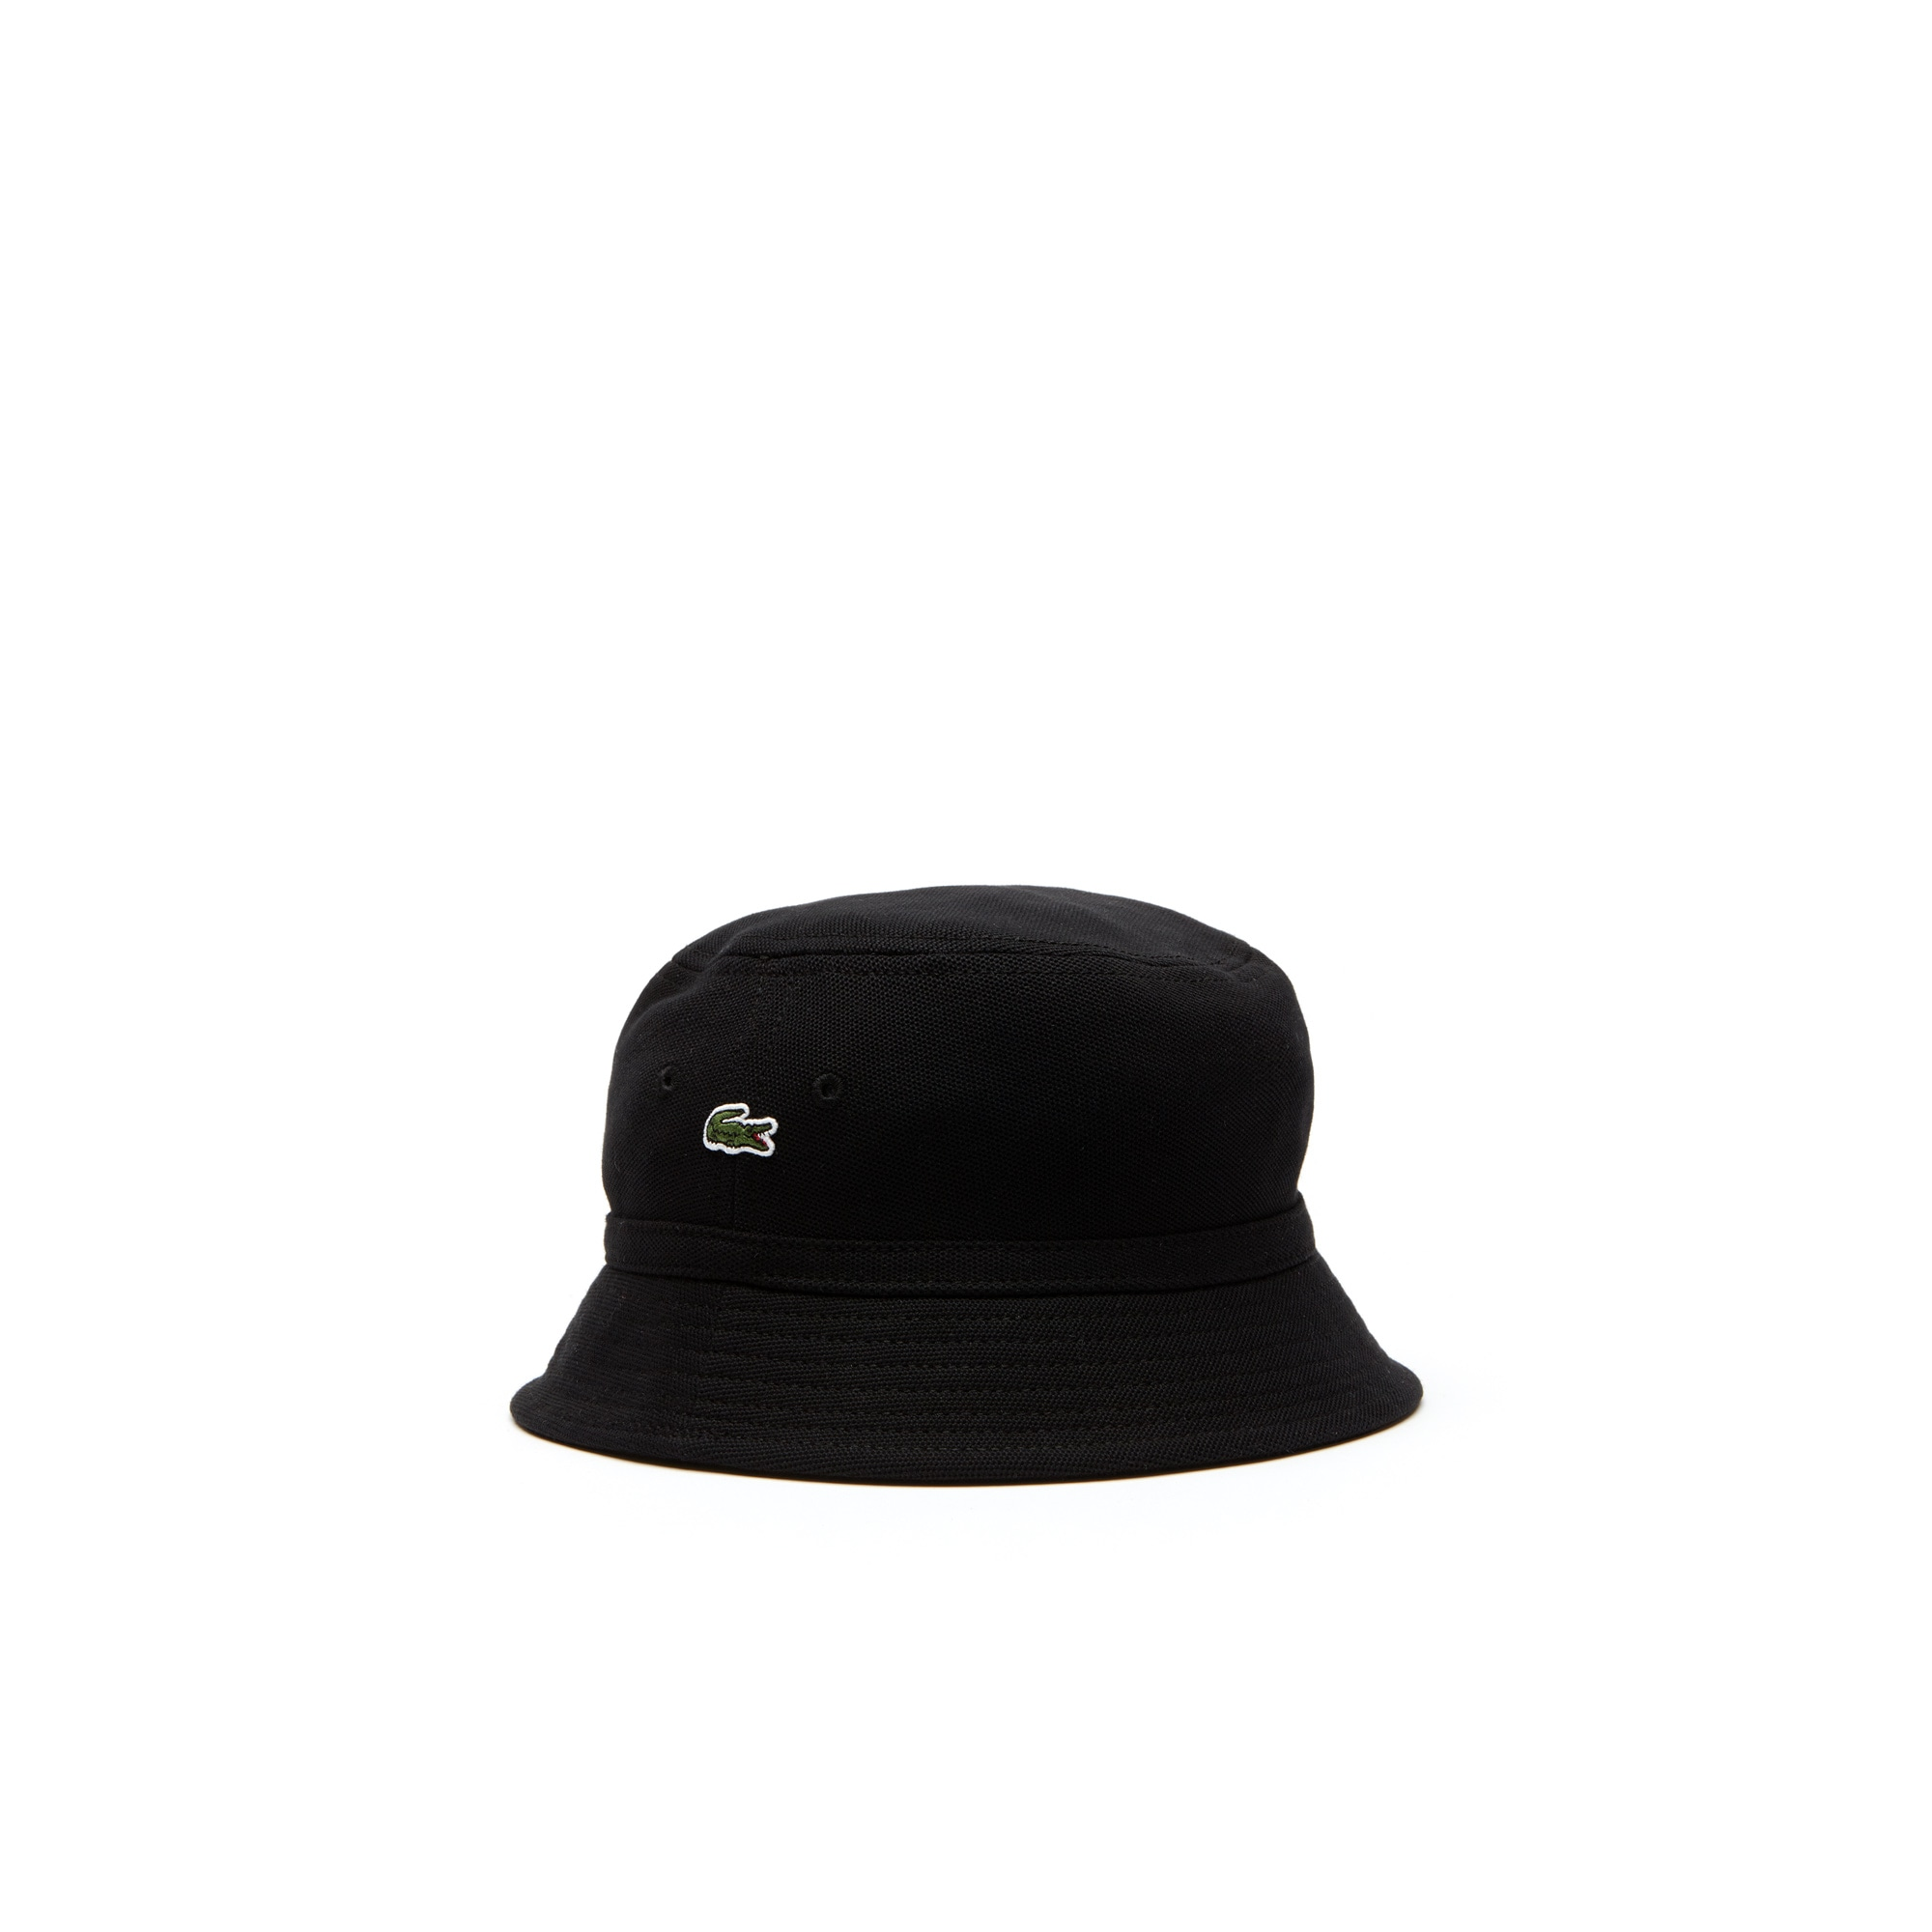 라코스테 Lacoste Mens Cotton pique bucket hat,black